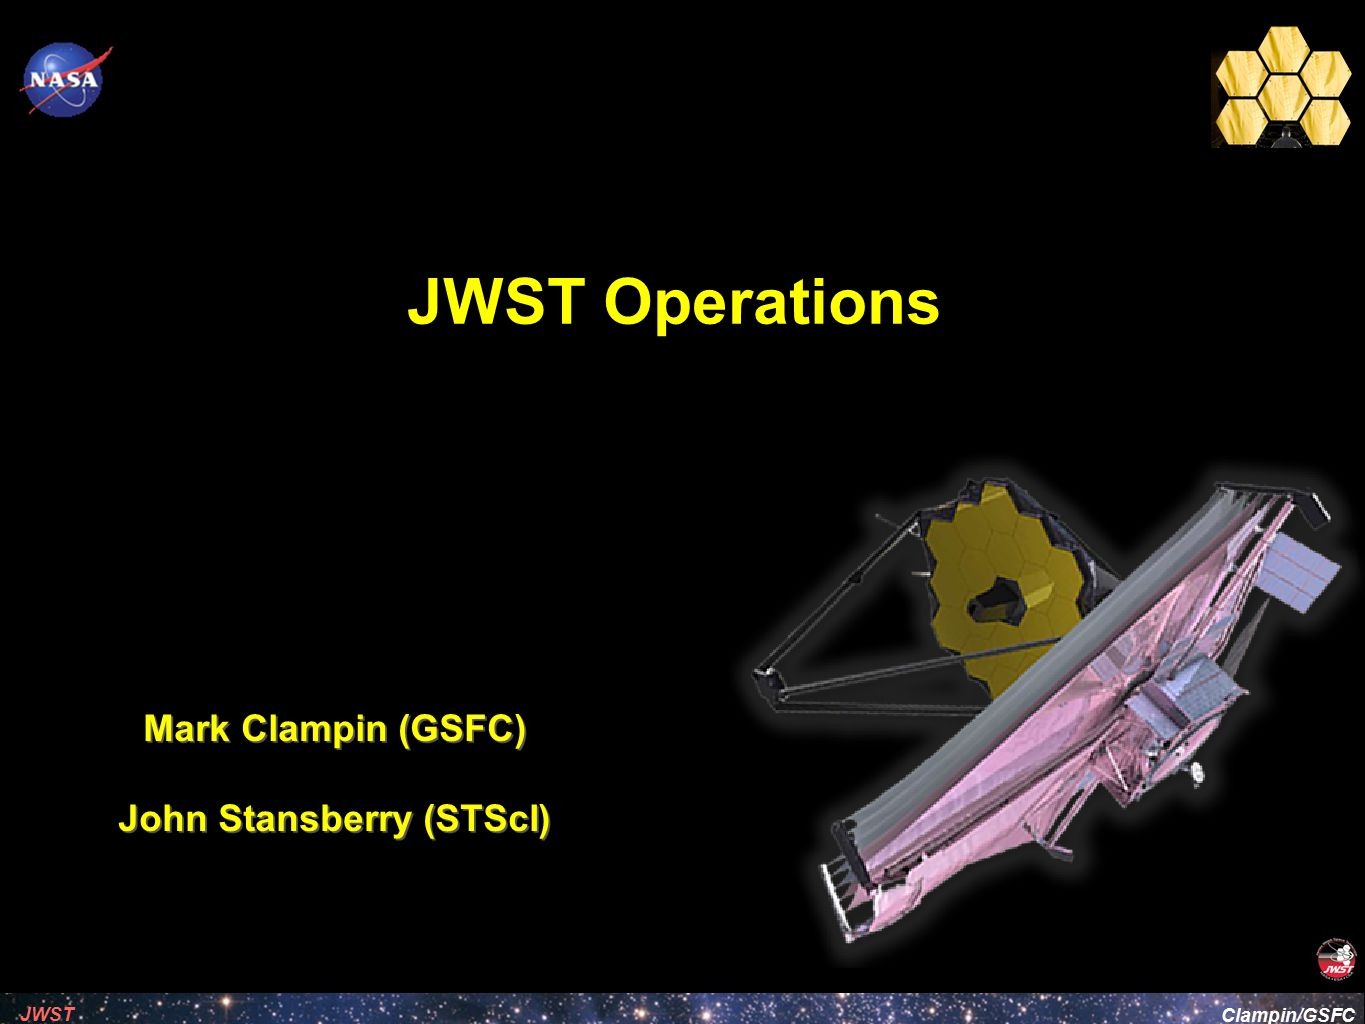 Clampin/GSFC JWST Mark Clampin (GSFC) John Stansberry (STScI) JWST Operations